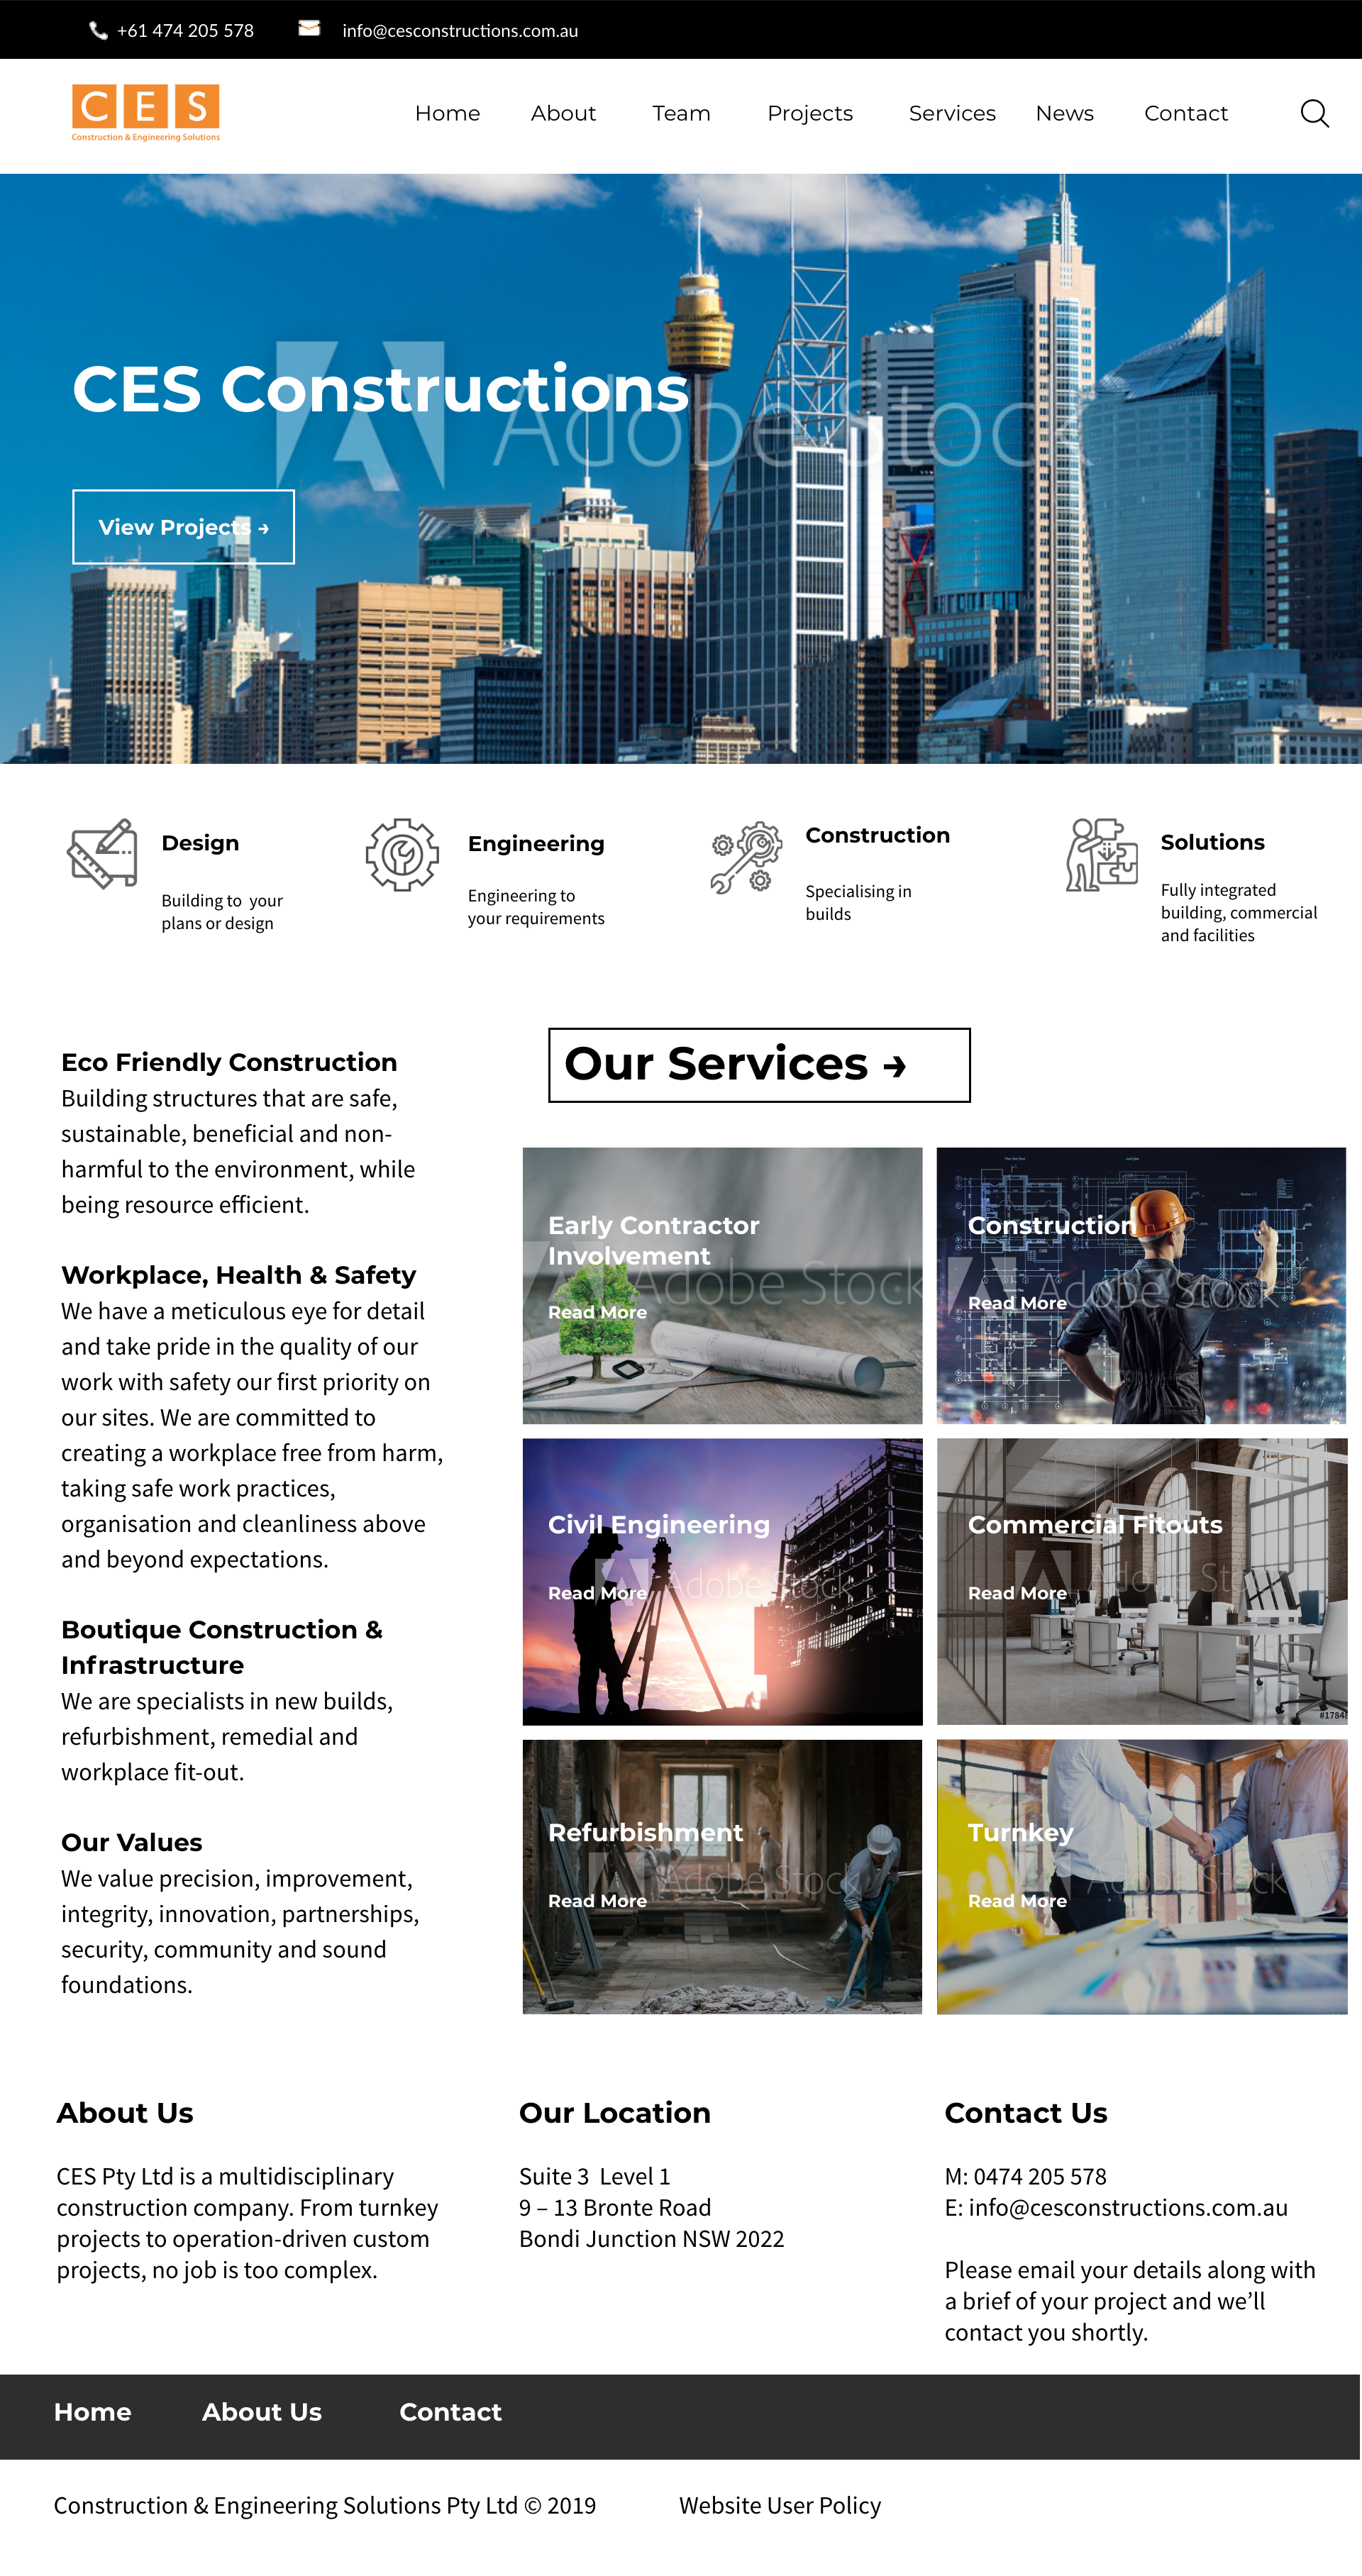 constructionandengineeringsolutions.com.au-home-wireframe-ladylexproductions.png